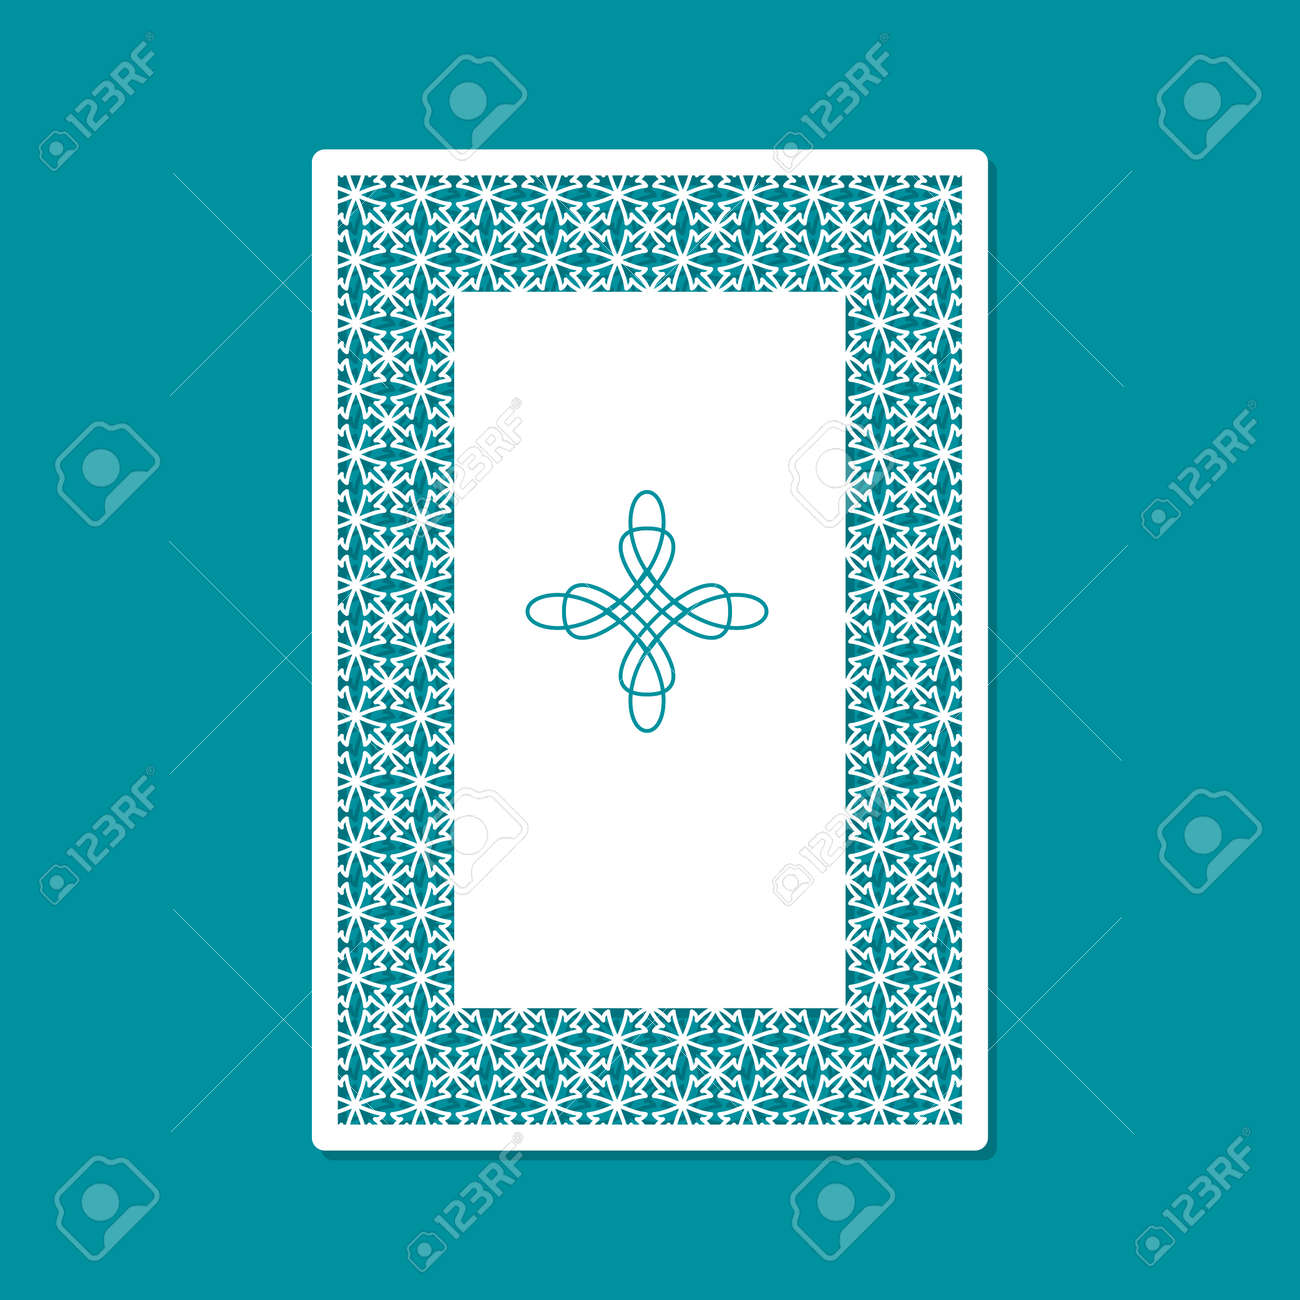 Laser Cutting And Printing Template Card For Greeting Cards